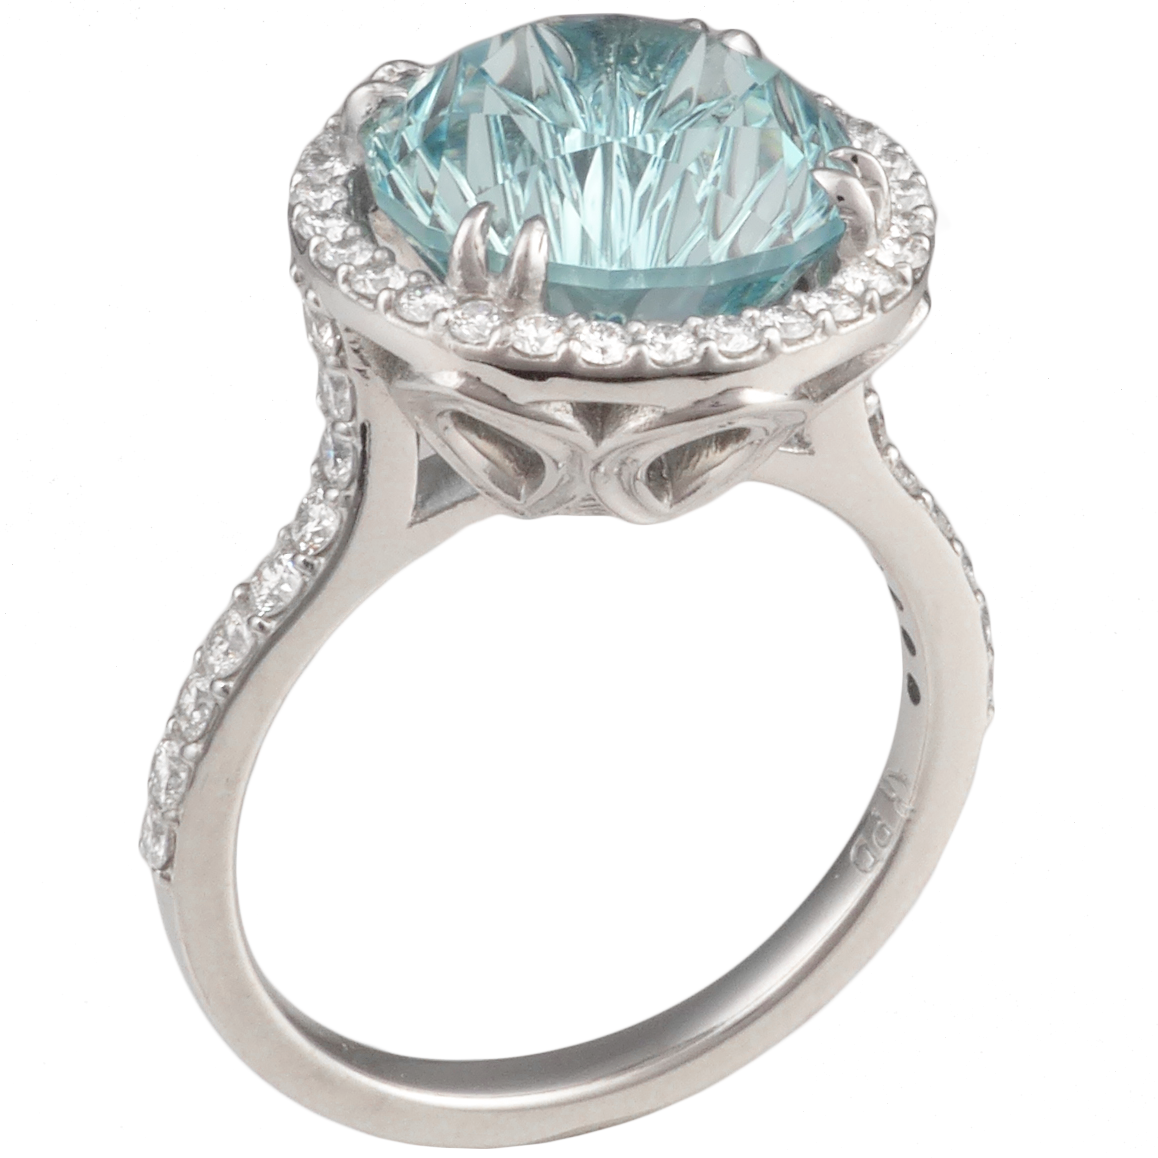 Colored Stone Wedding Rings at Exclusive Wedding Decoration and